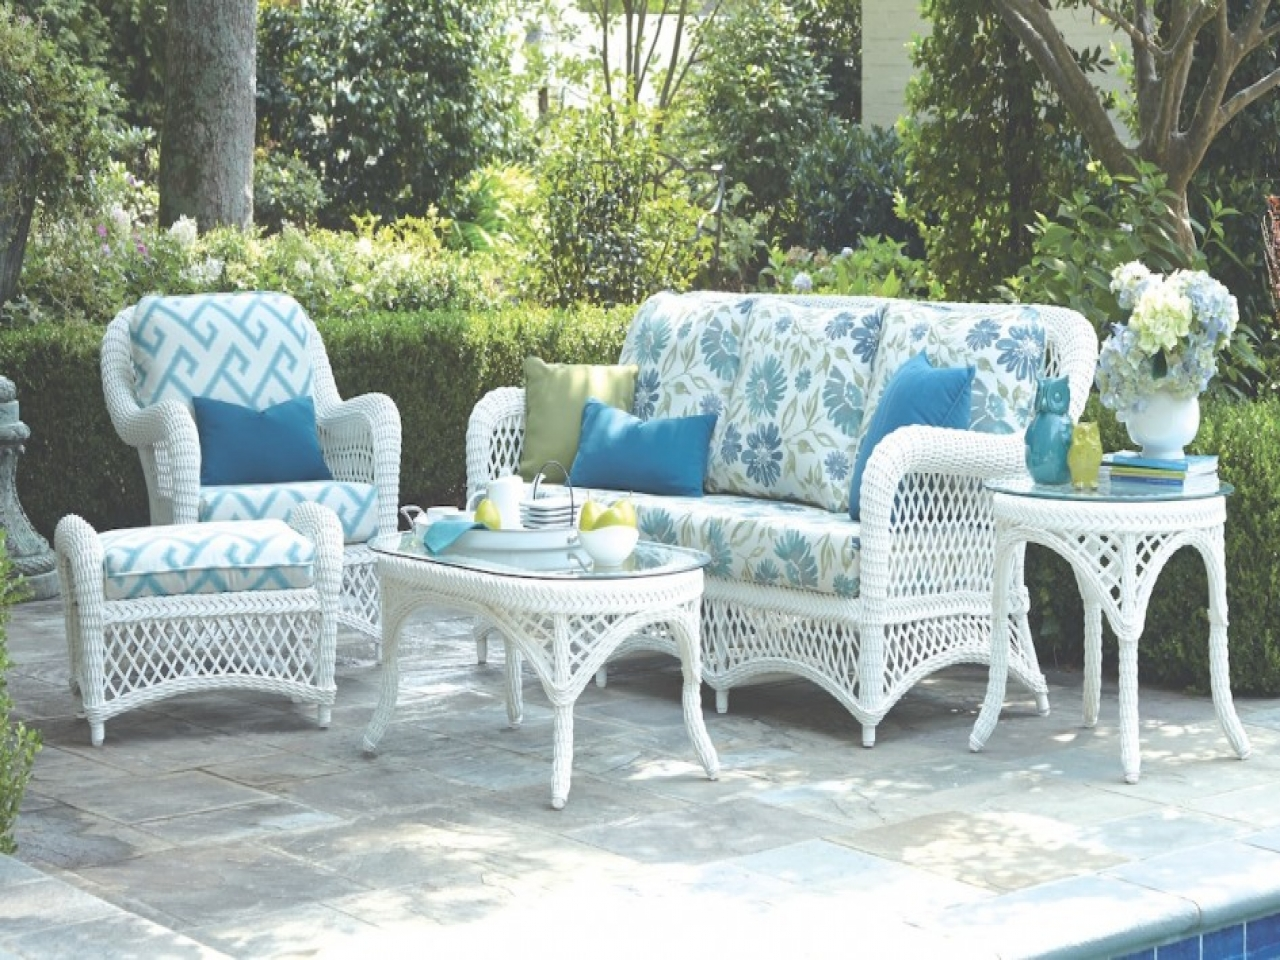 White Outdoor Wicker Patio Furniture Jeco Wicker Patio Furniture White Outdoor Coffee Table